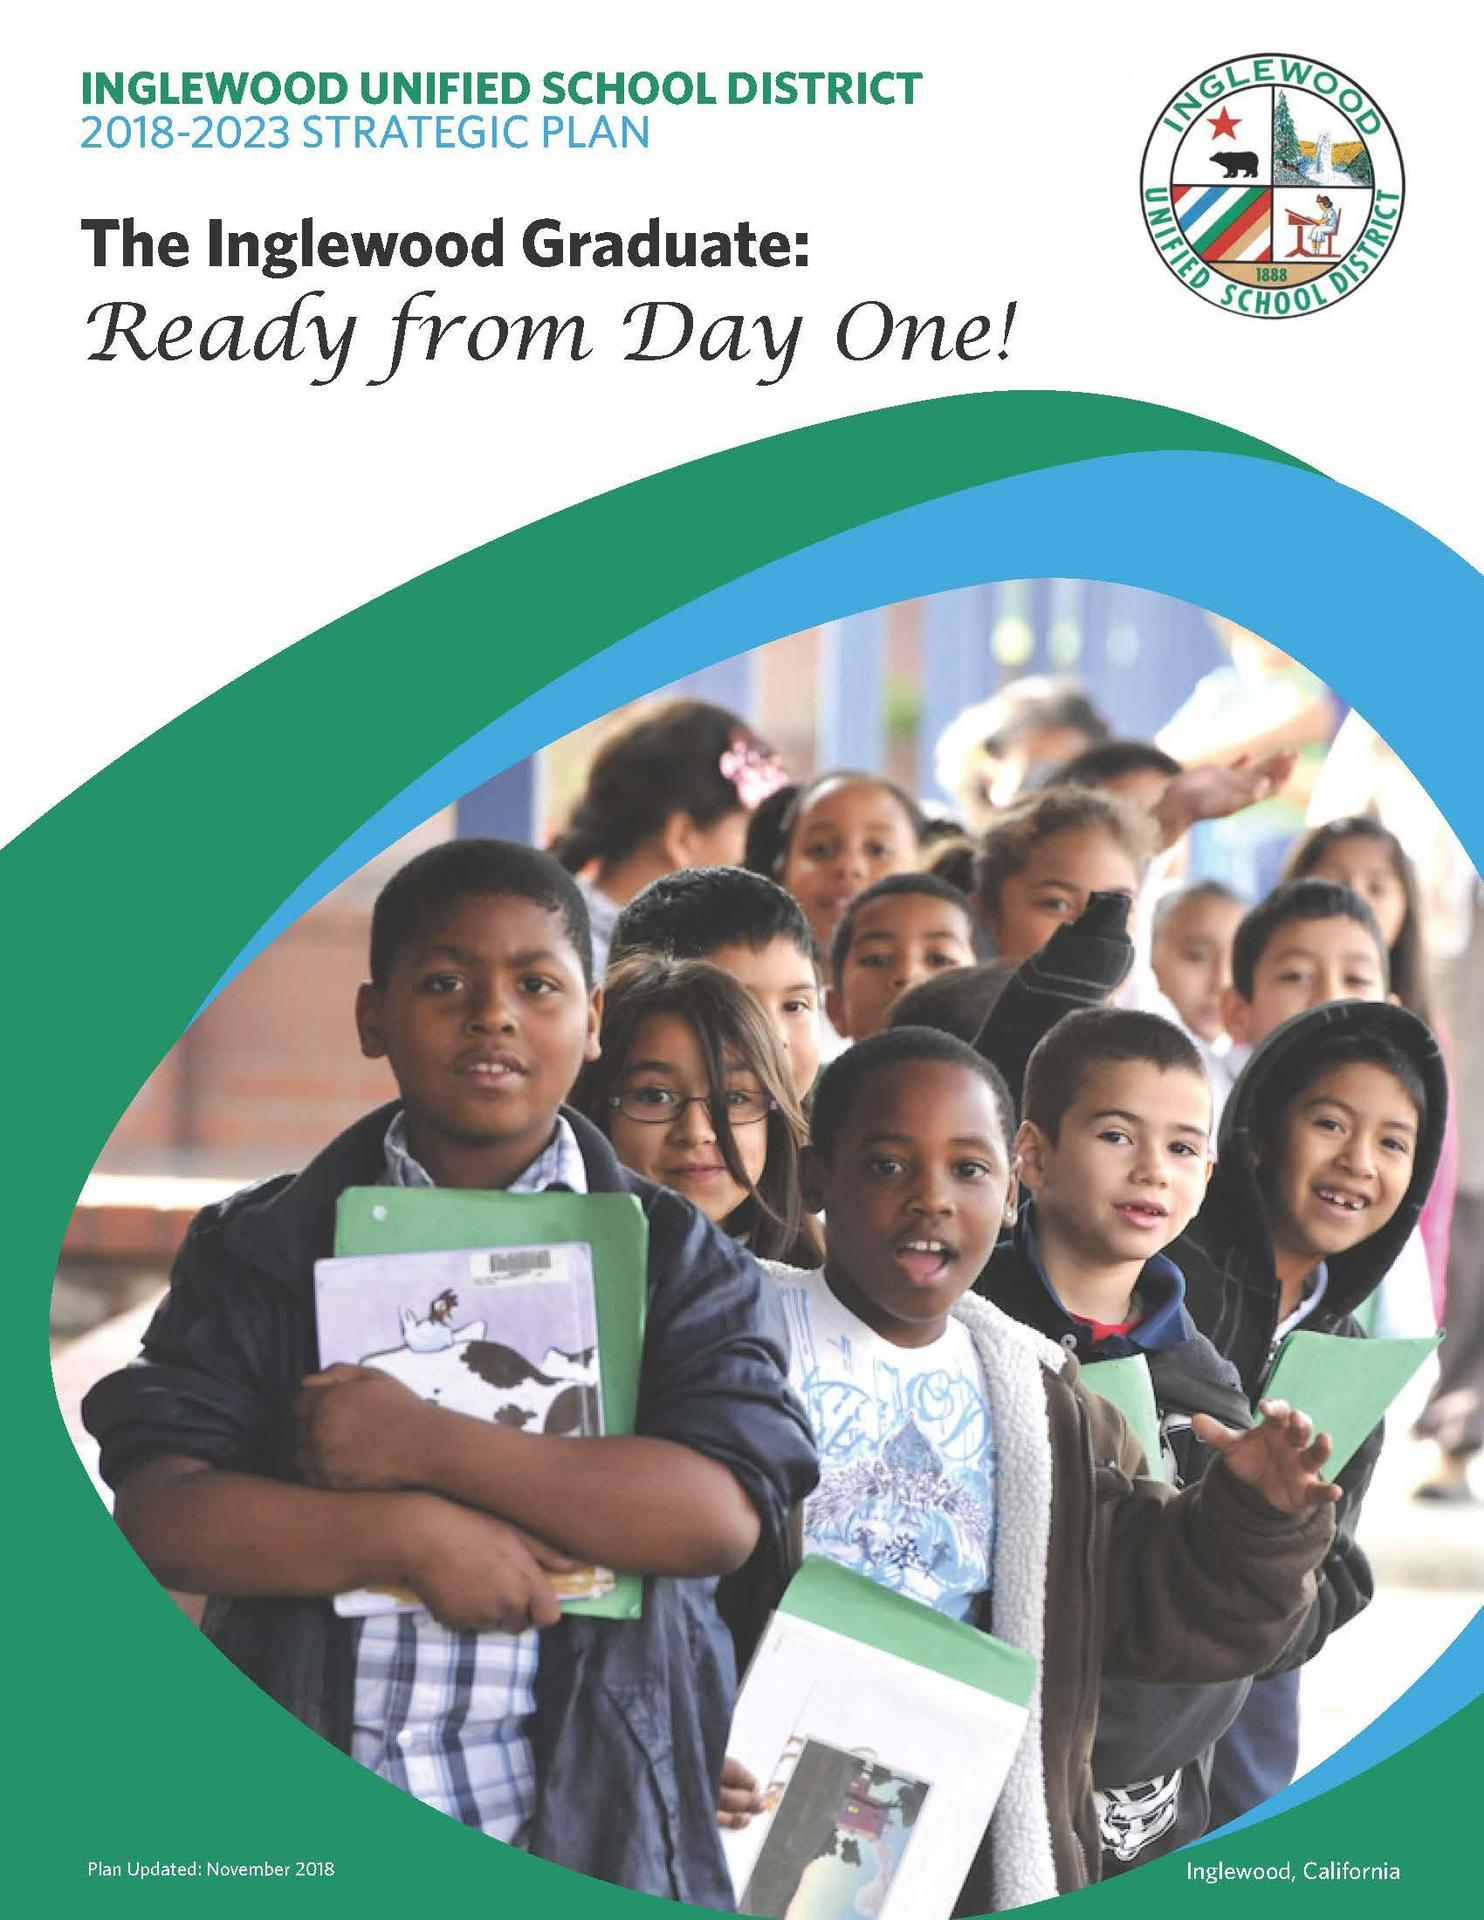 Cover of the 5-year strategic plan